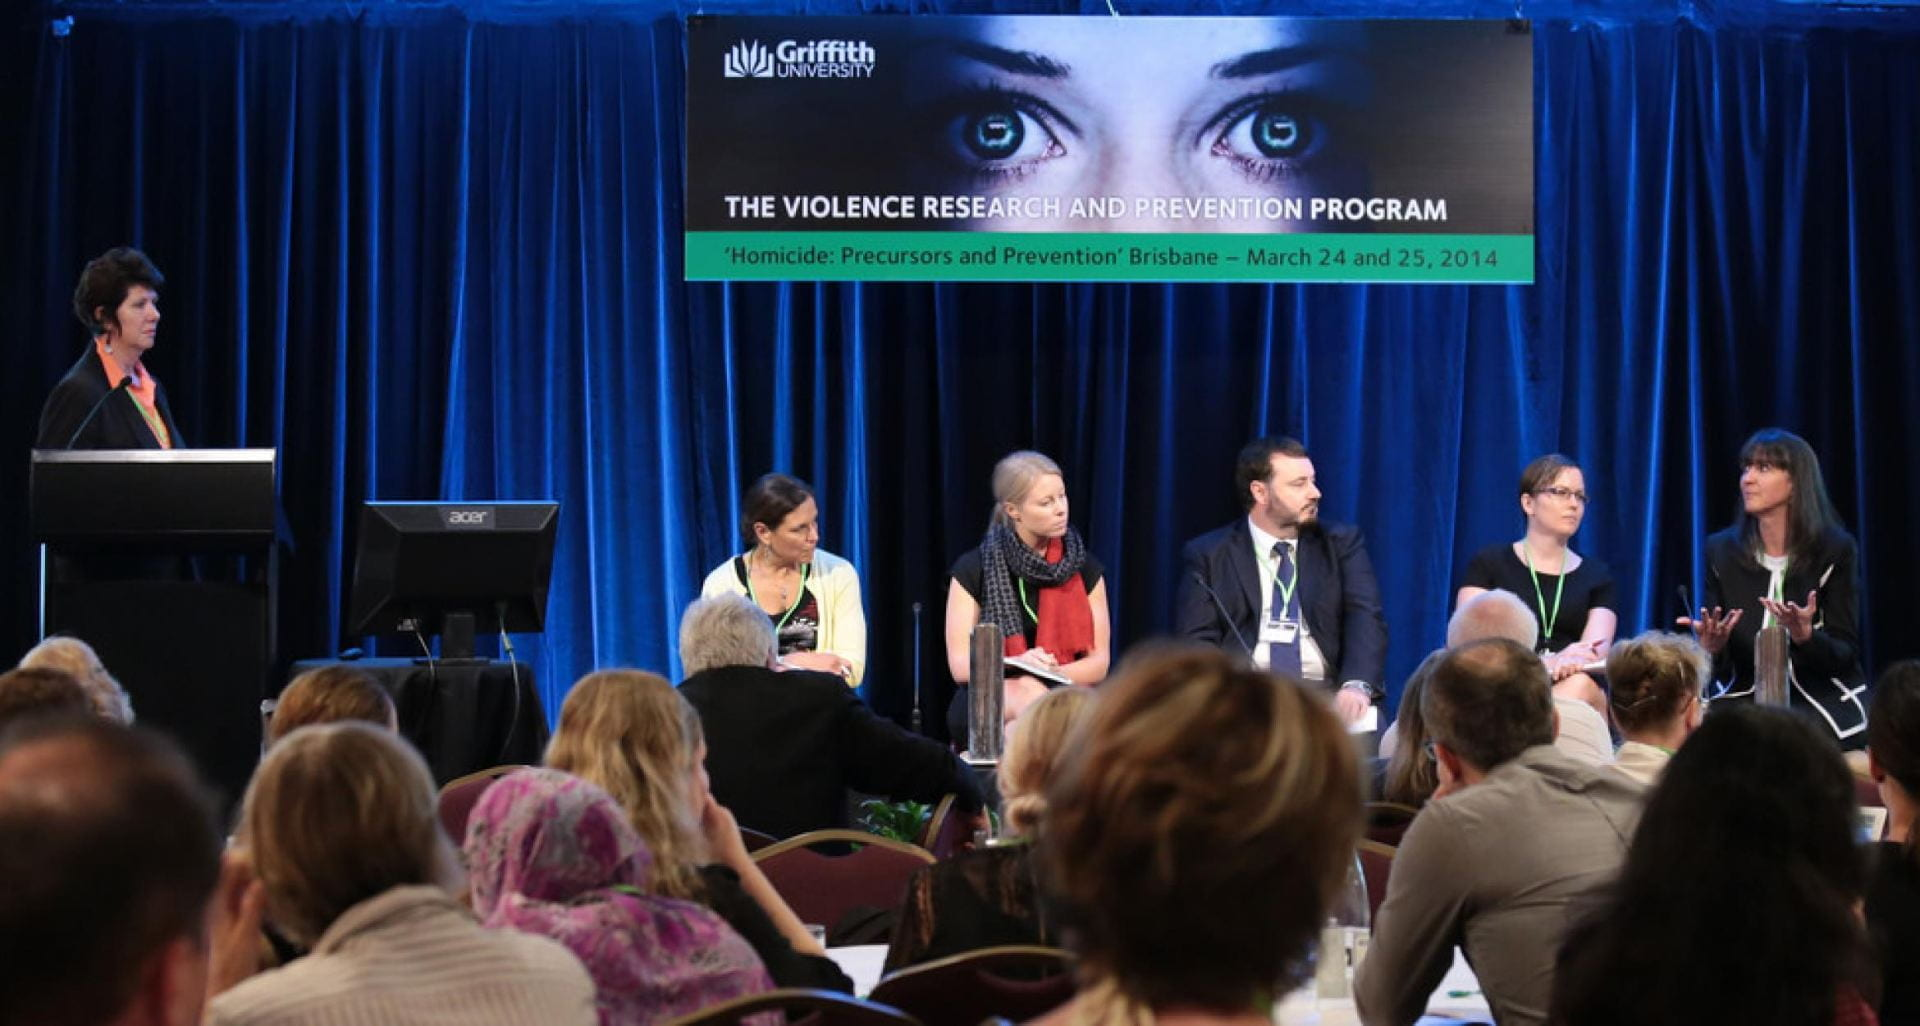 Panel at Australian Homicide Conference at Griffiths University.